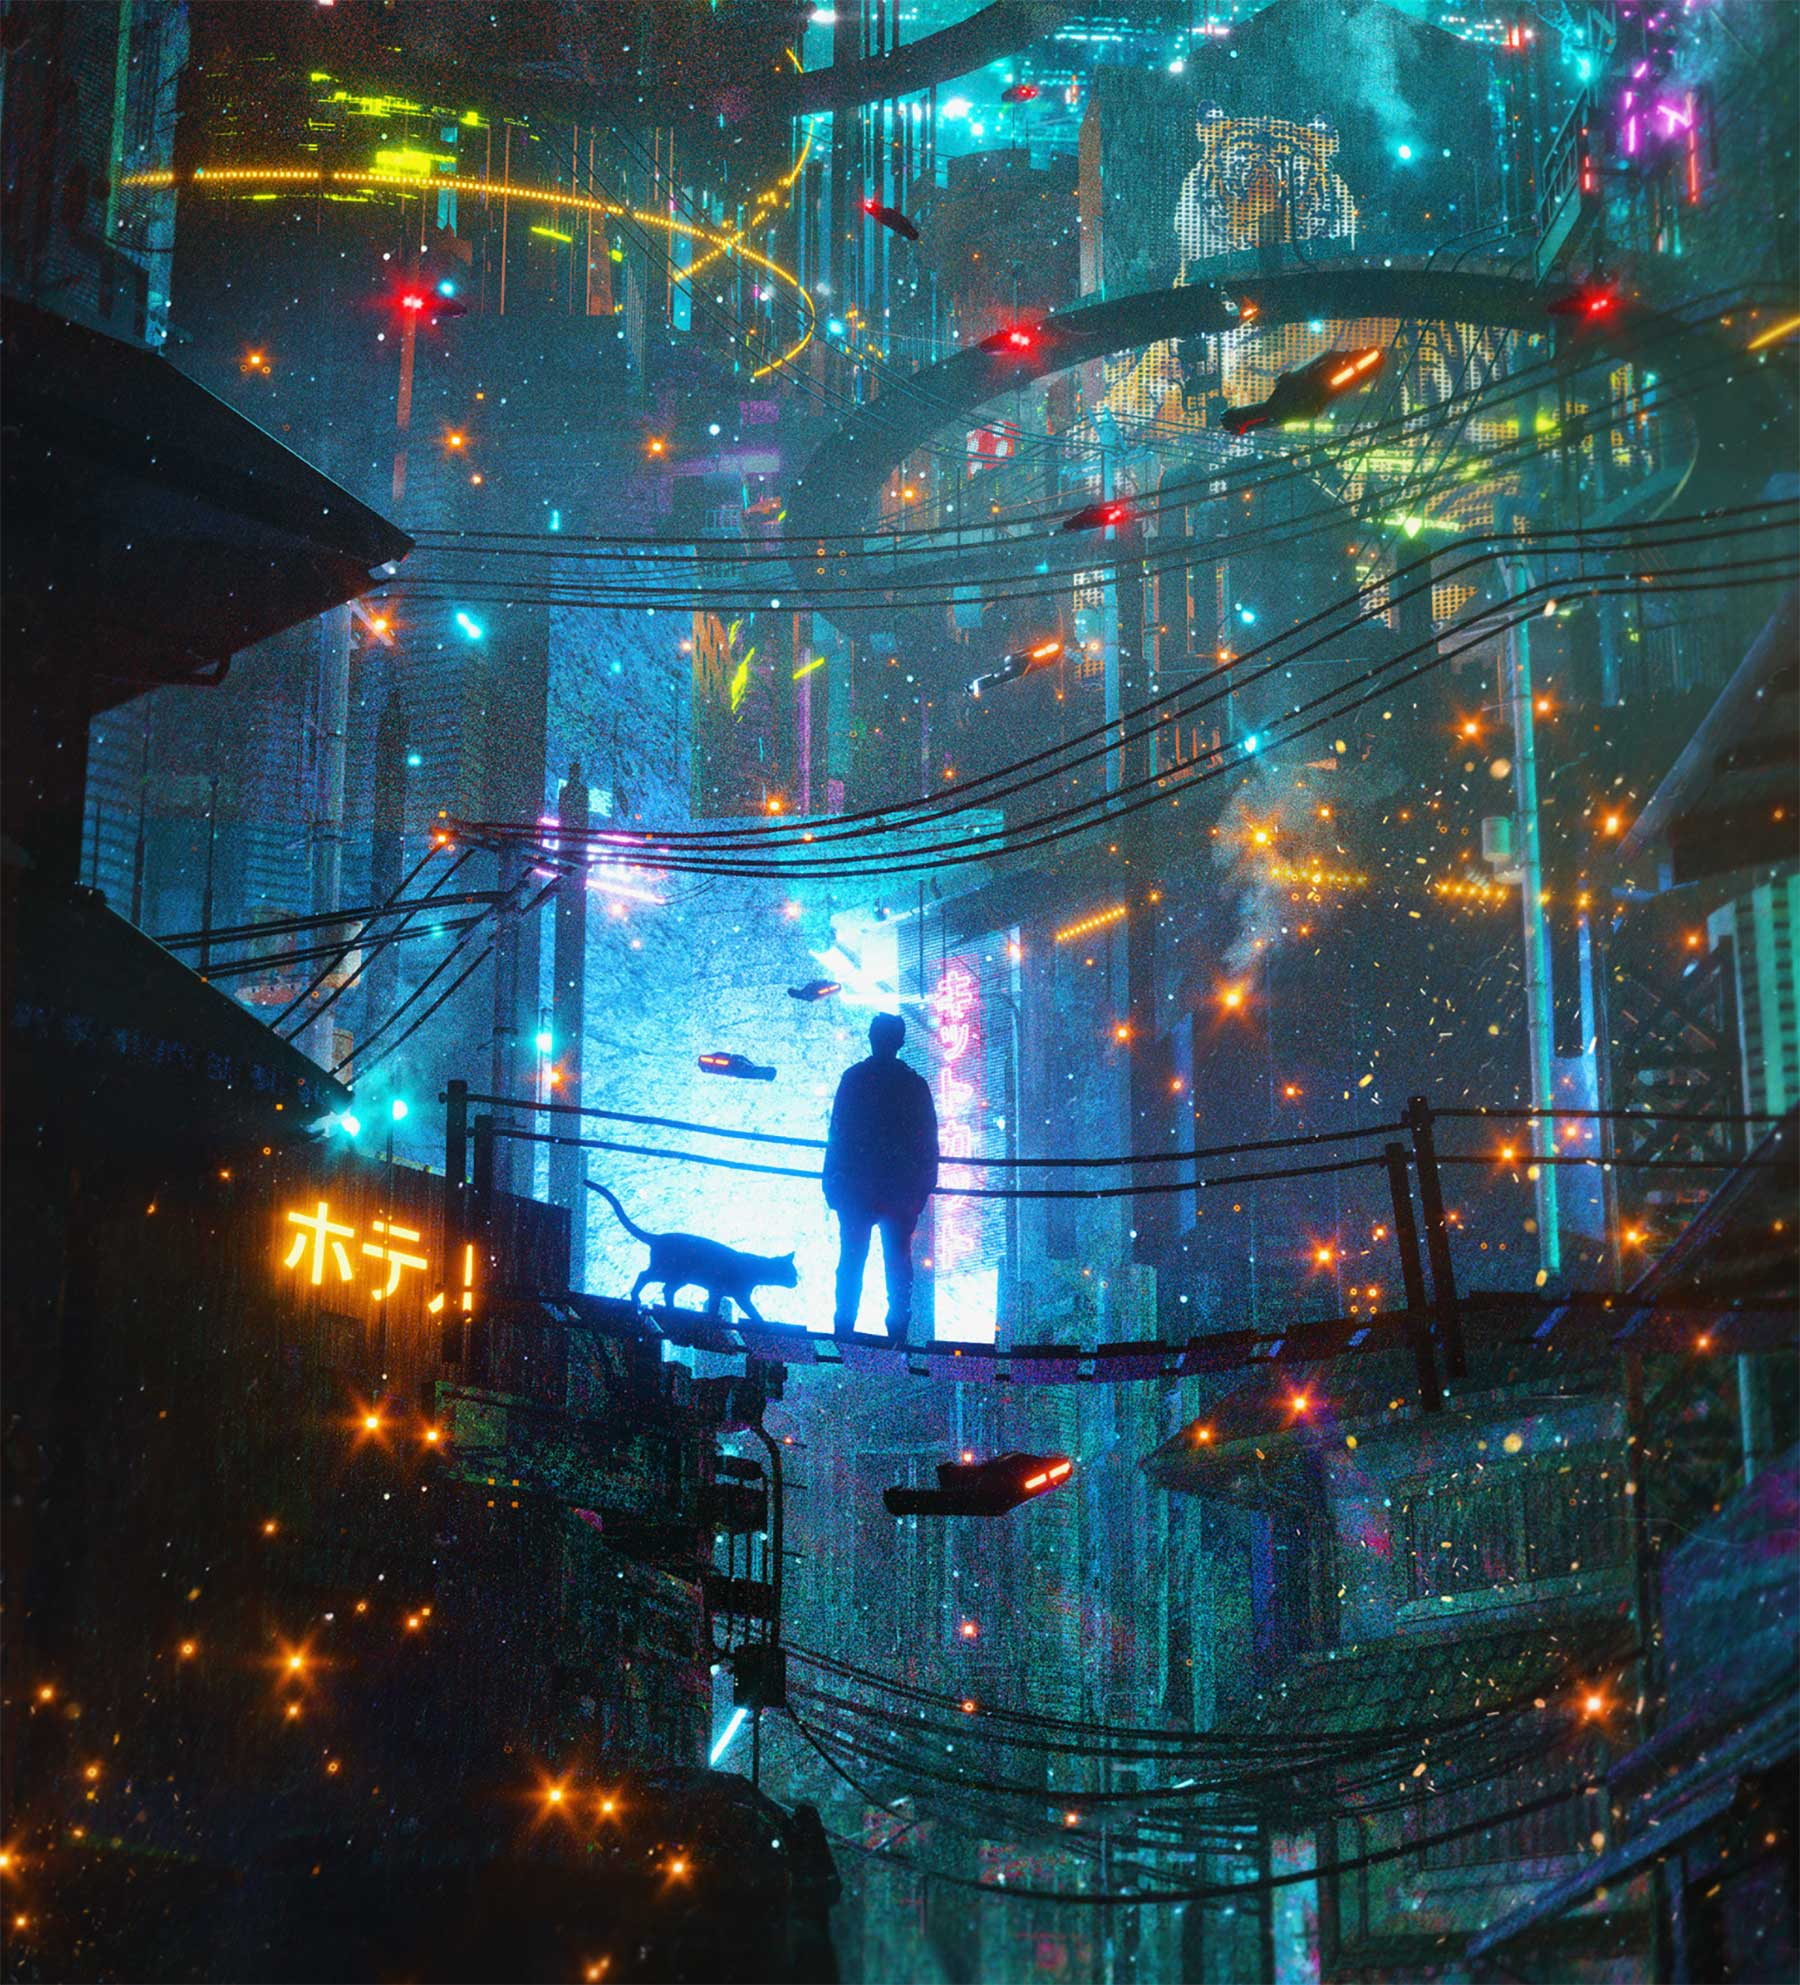 Digital Cyberpunk Art von Dangiuz